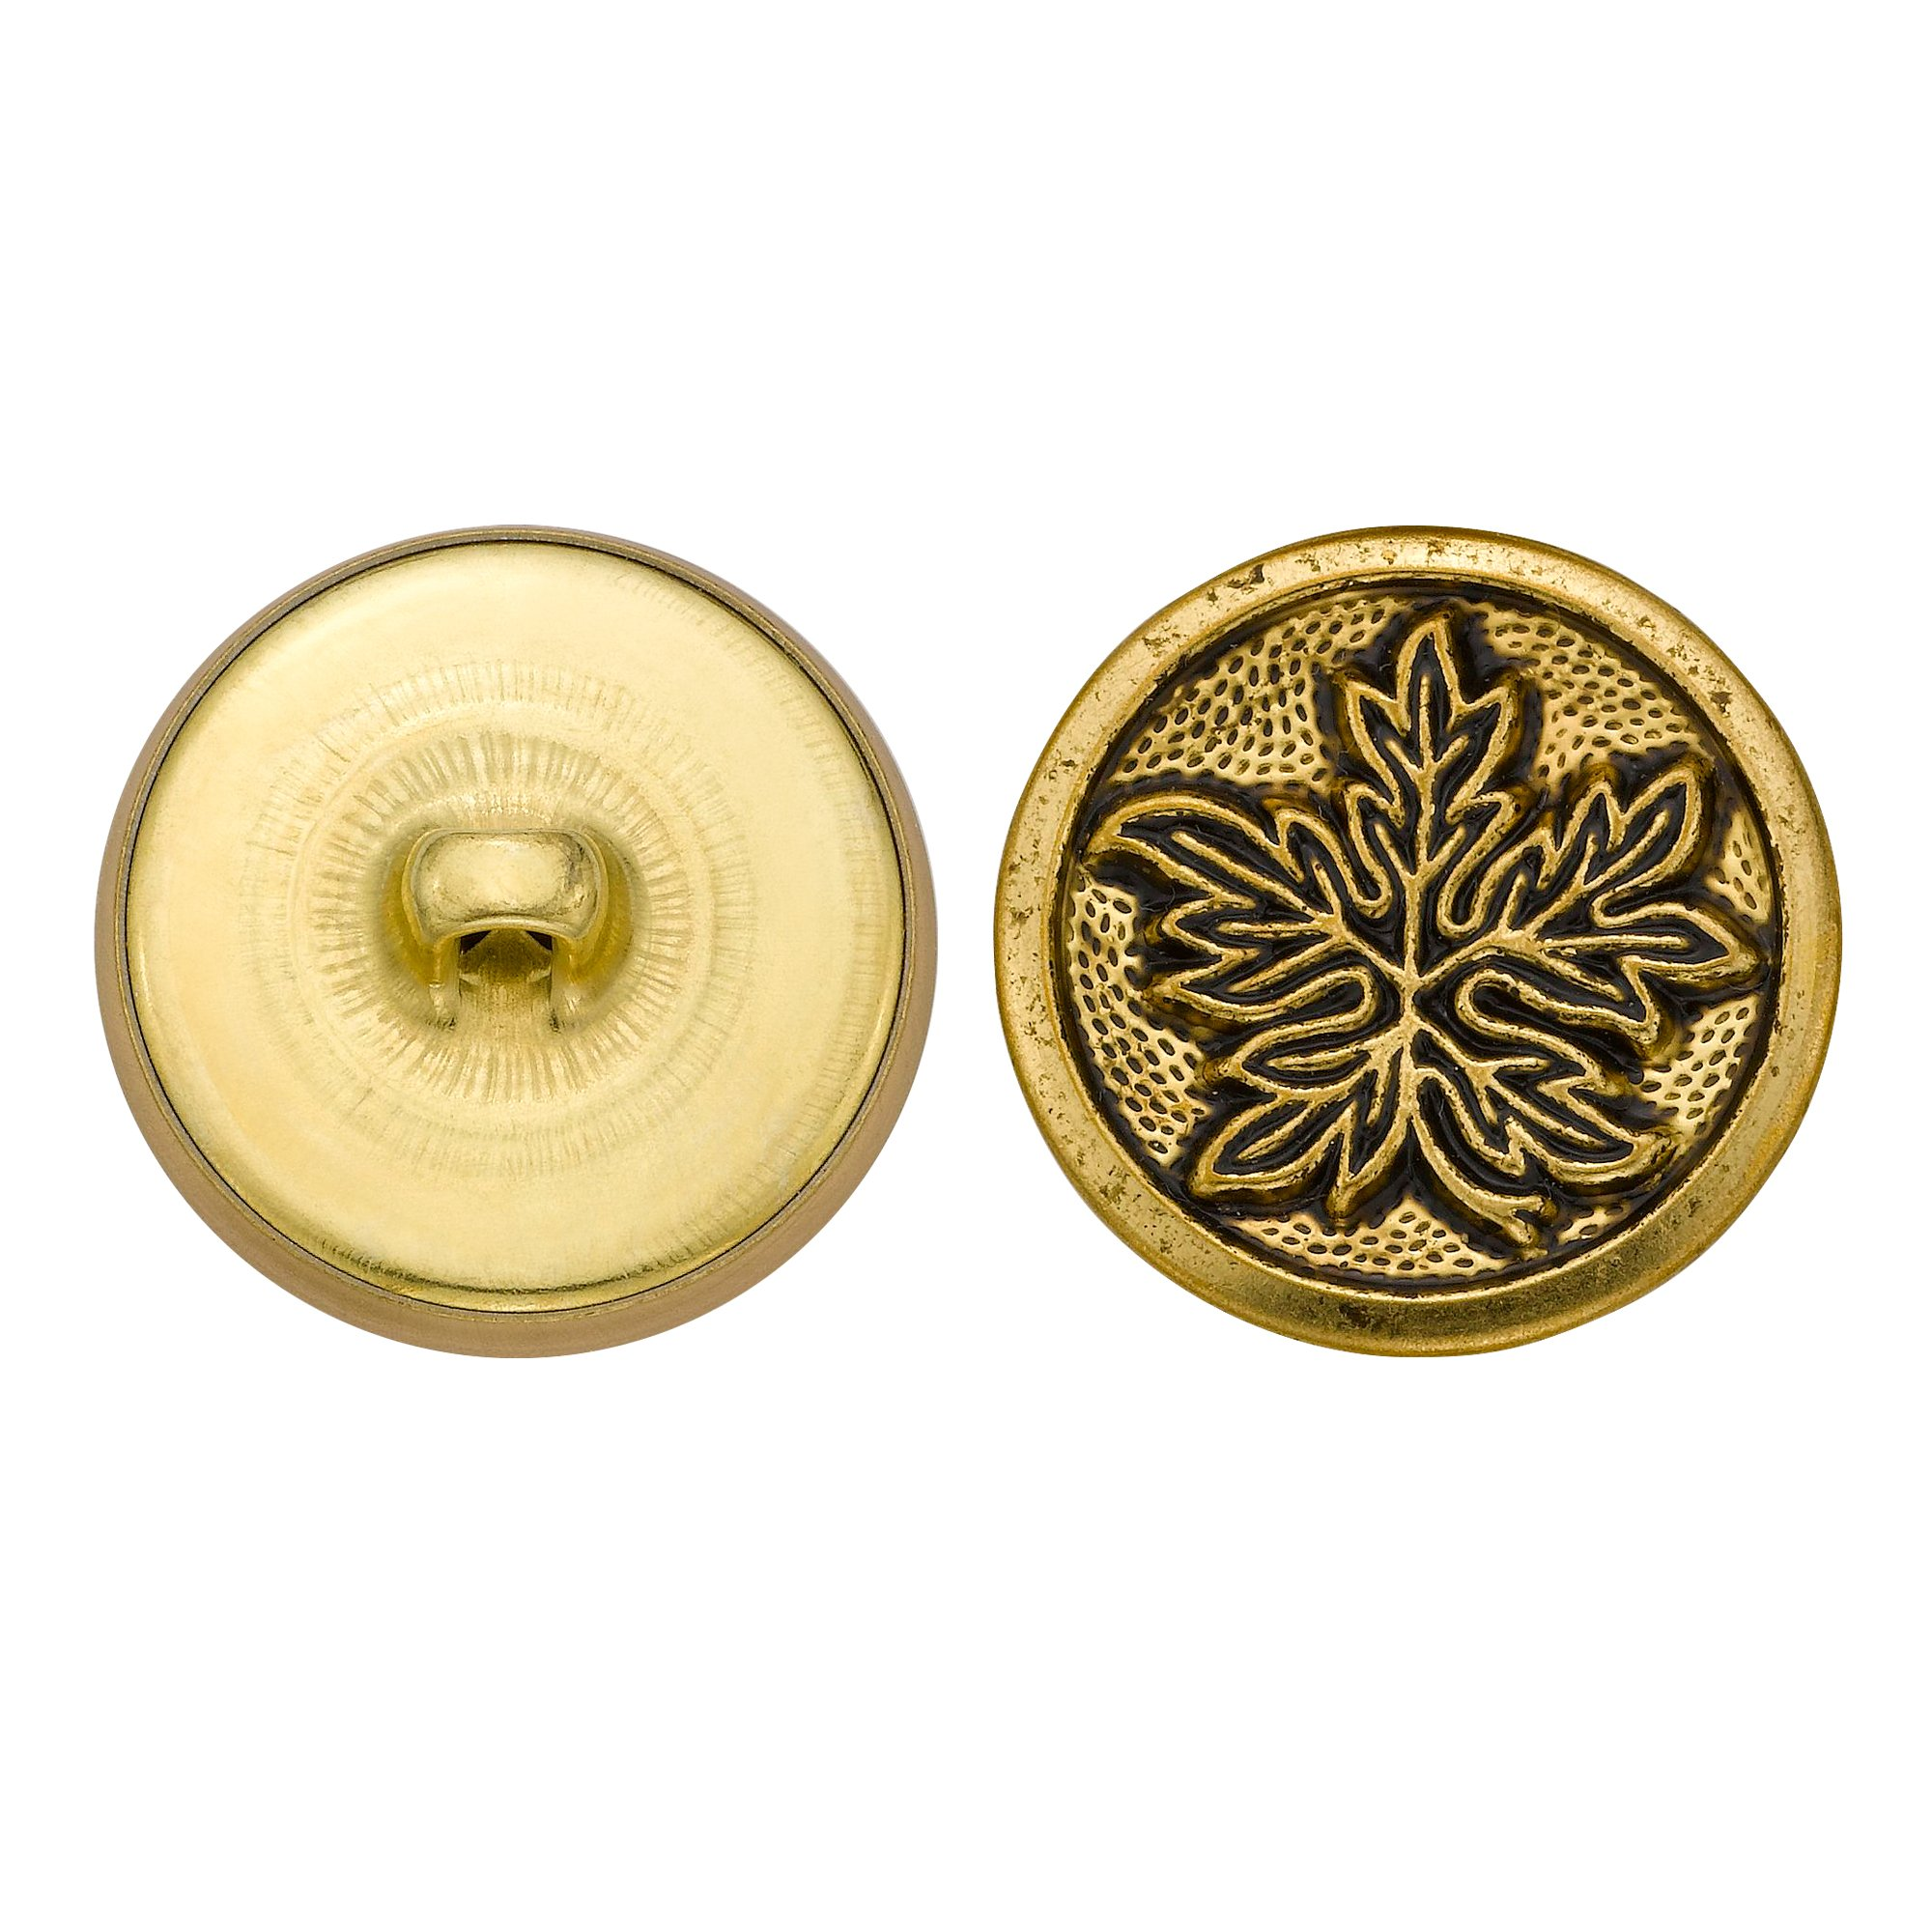 C&C Metal Products 5231 Leaves Metal Button, Size 36 Ligne, Antique Gold, 36-Pack